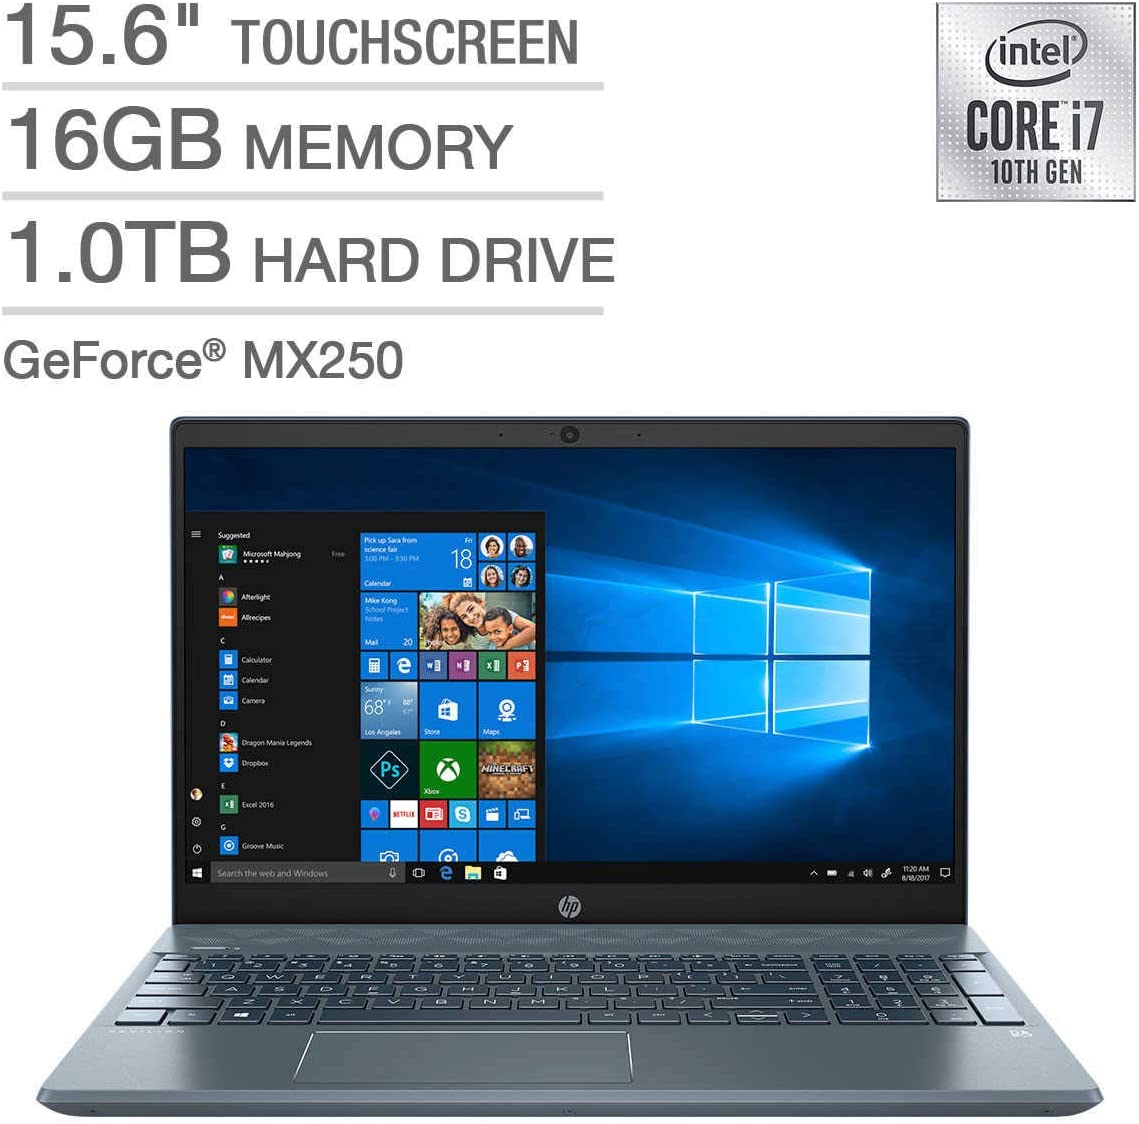 "HP High Performance Pavilion 15-cs3073cl 15.6"" Touchscreen Laptop - 10th Gen Intel Core i7-1065G7 - GeForce MX250 -16GB RAM - 1TB HDD - Backlit Keyboard- Fog Blue"